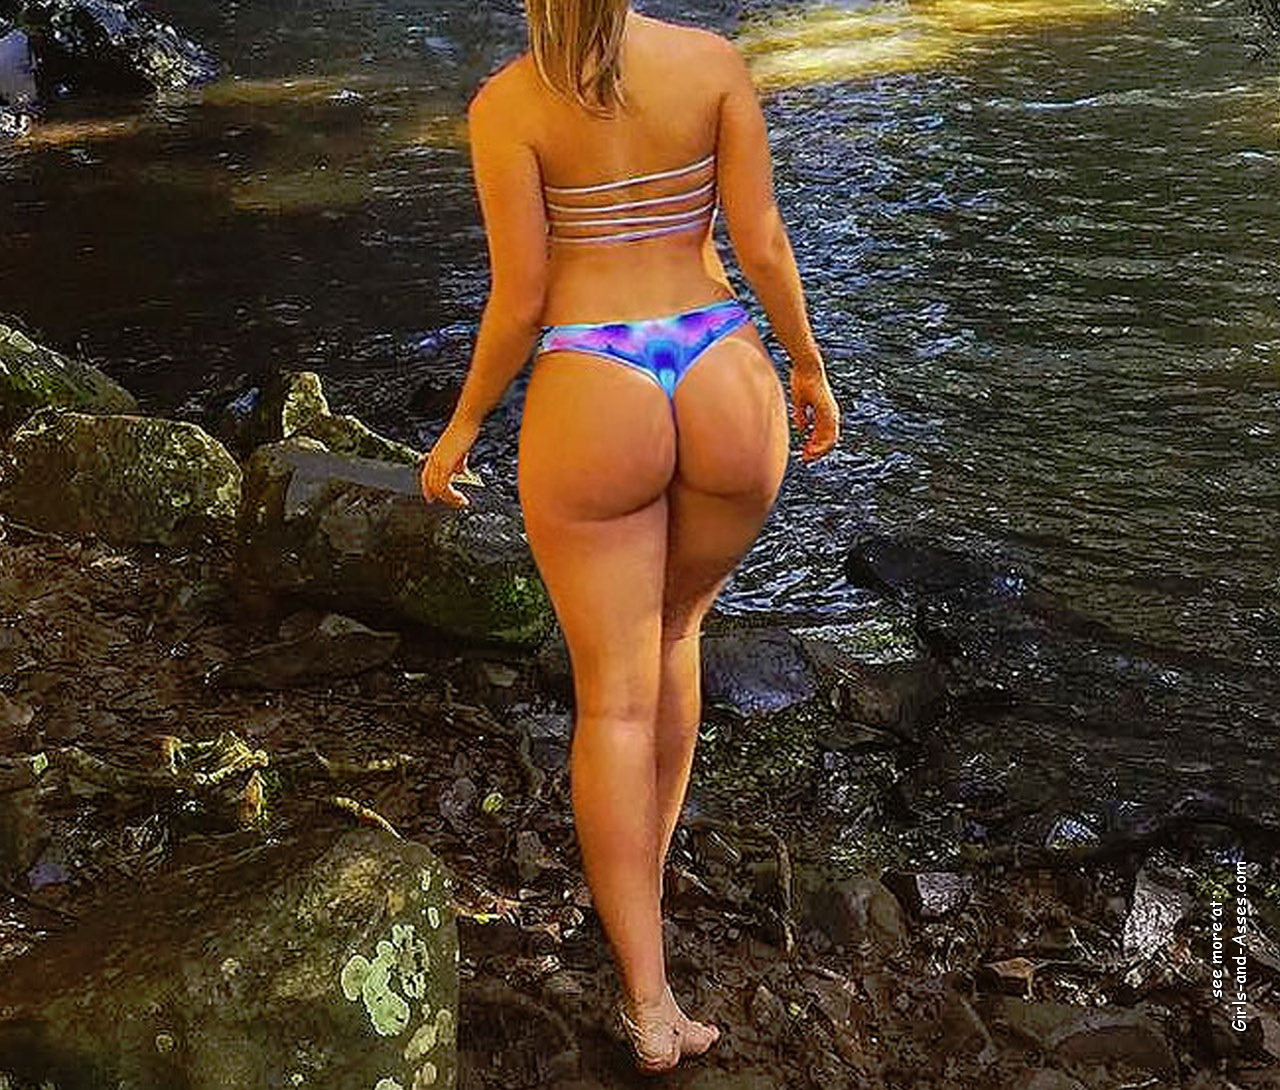 naked girl with big ass in a river picture 05539